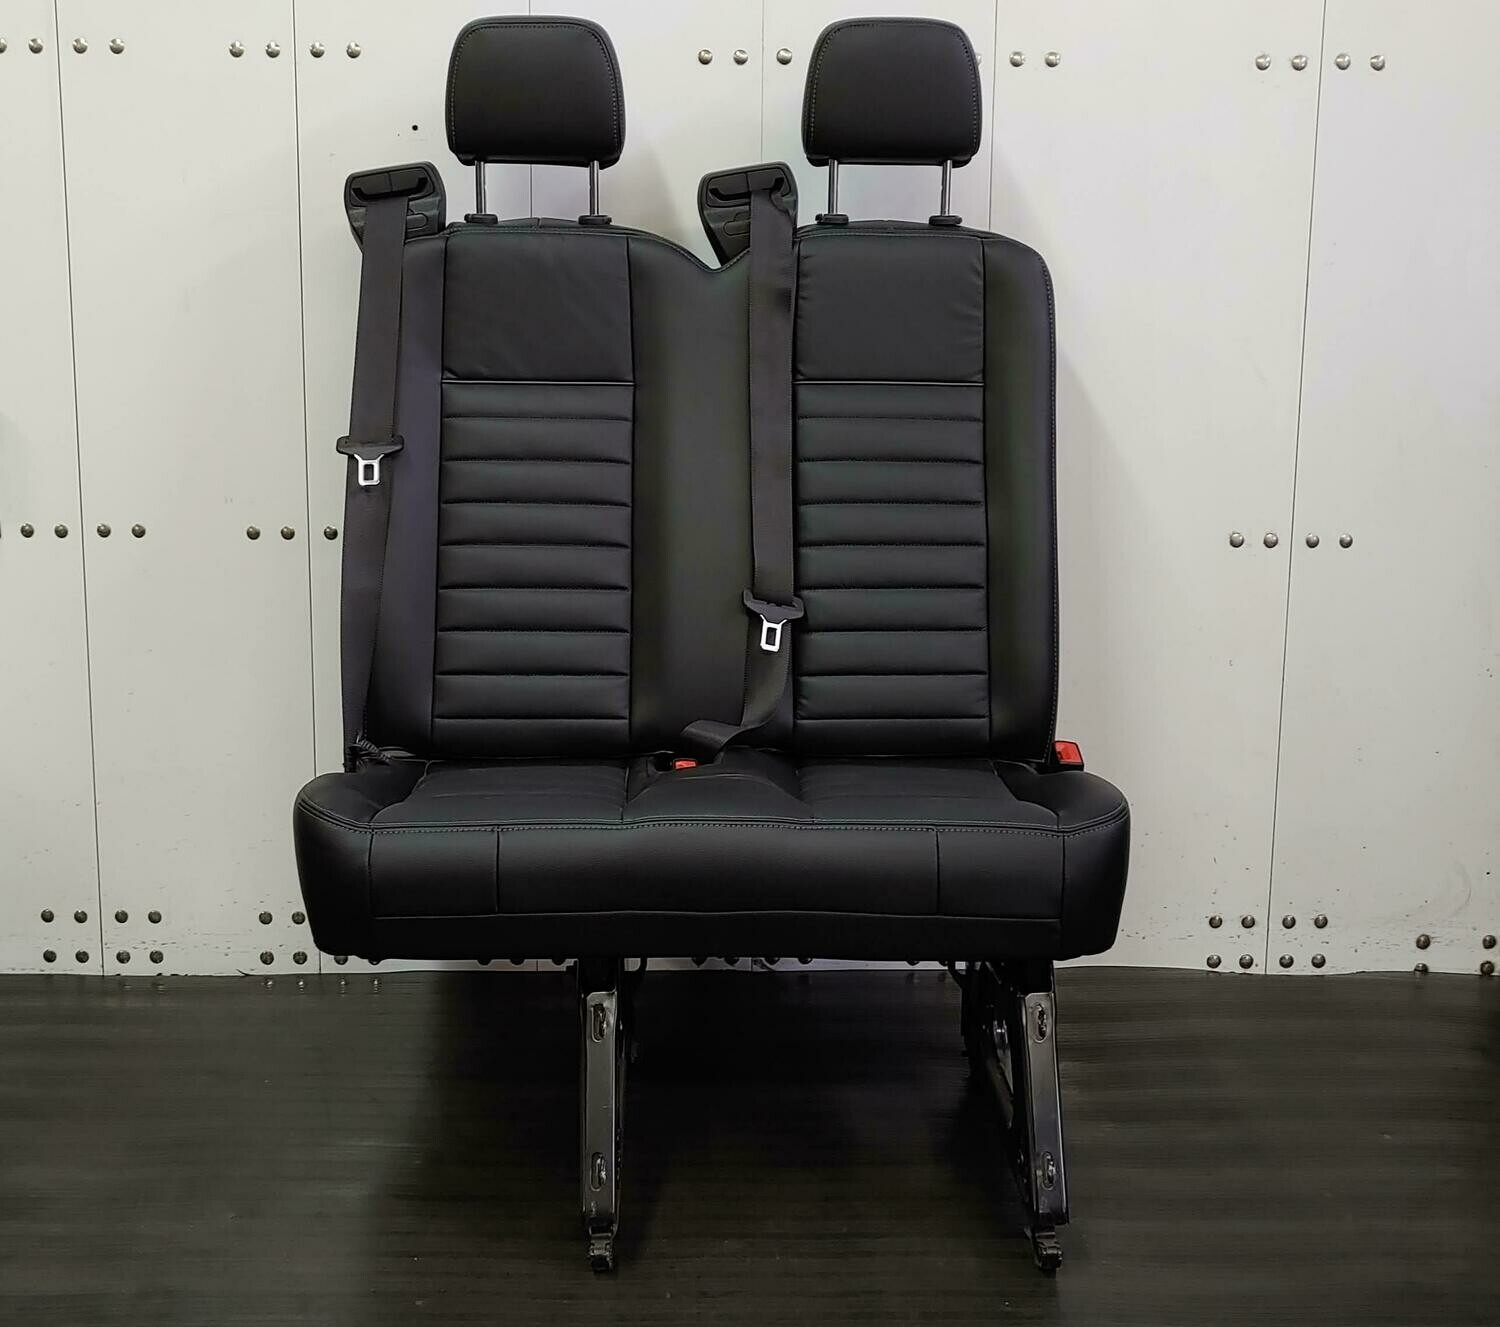 2 Passenger Leather Bench Seat -  Removable